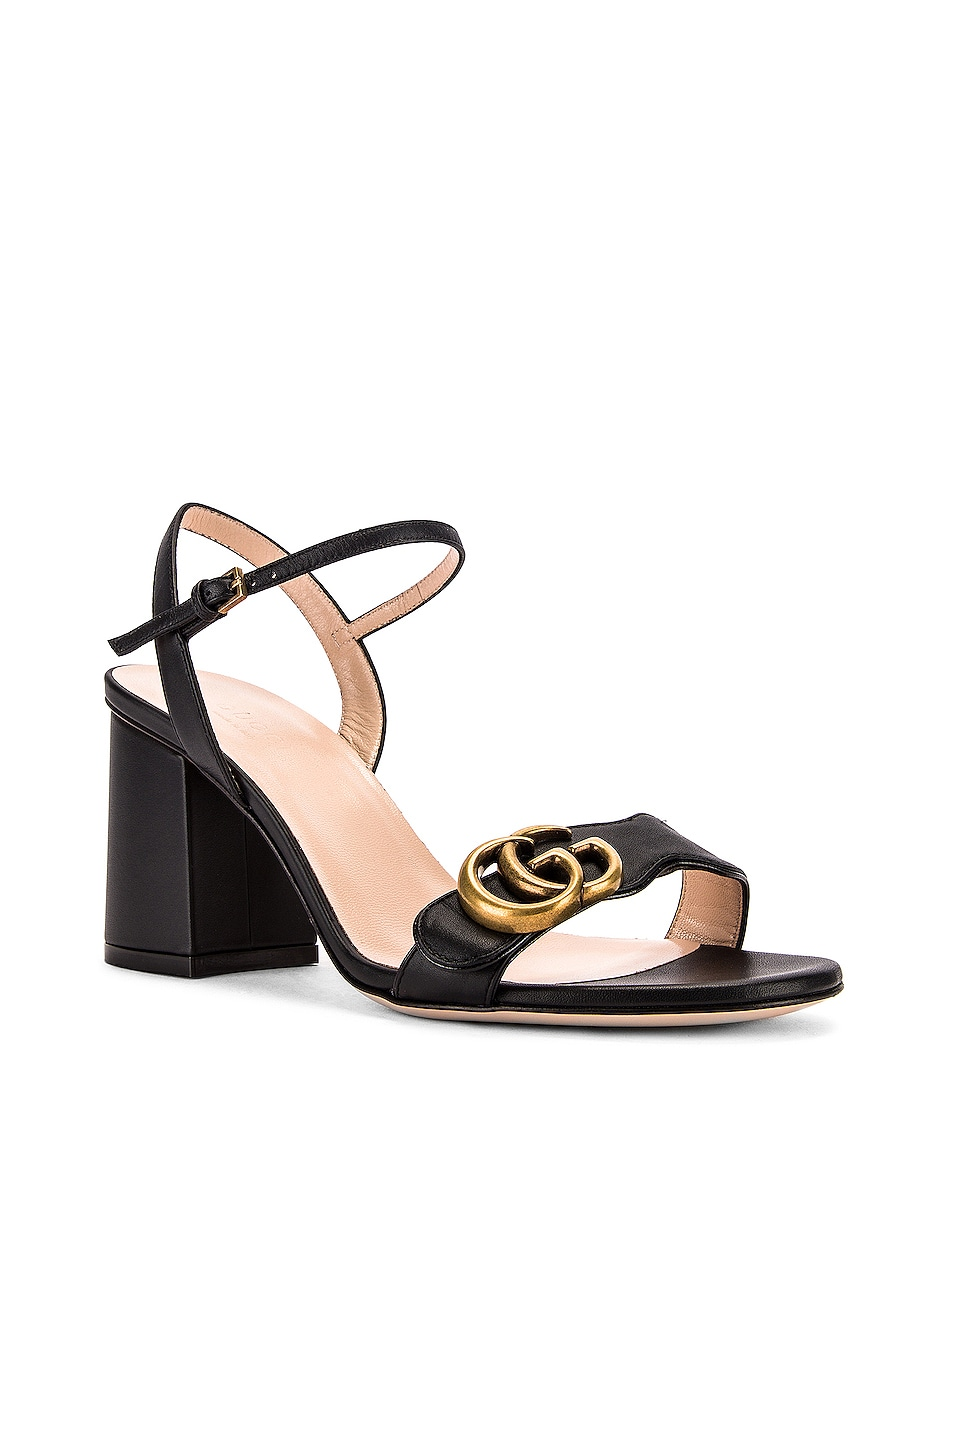 Image 3 of Gucci Leather Mid Heel Sandals in Black